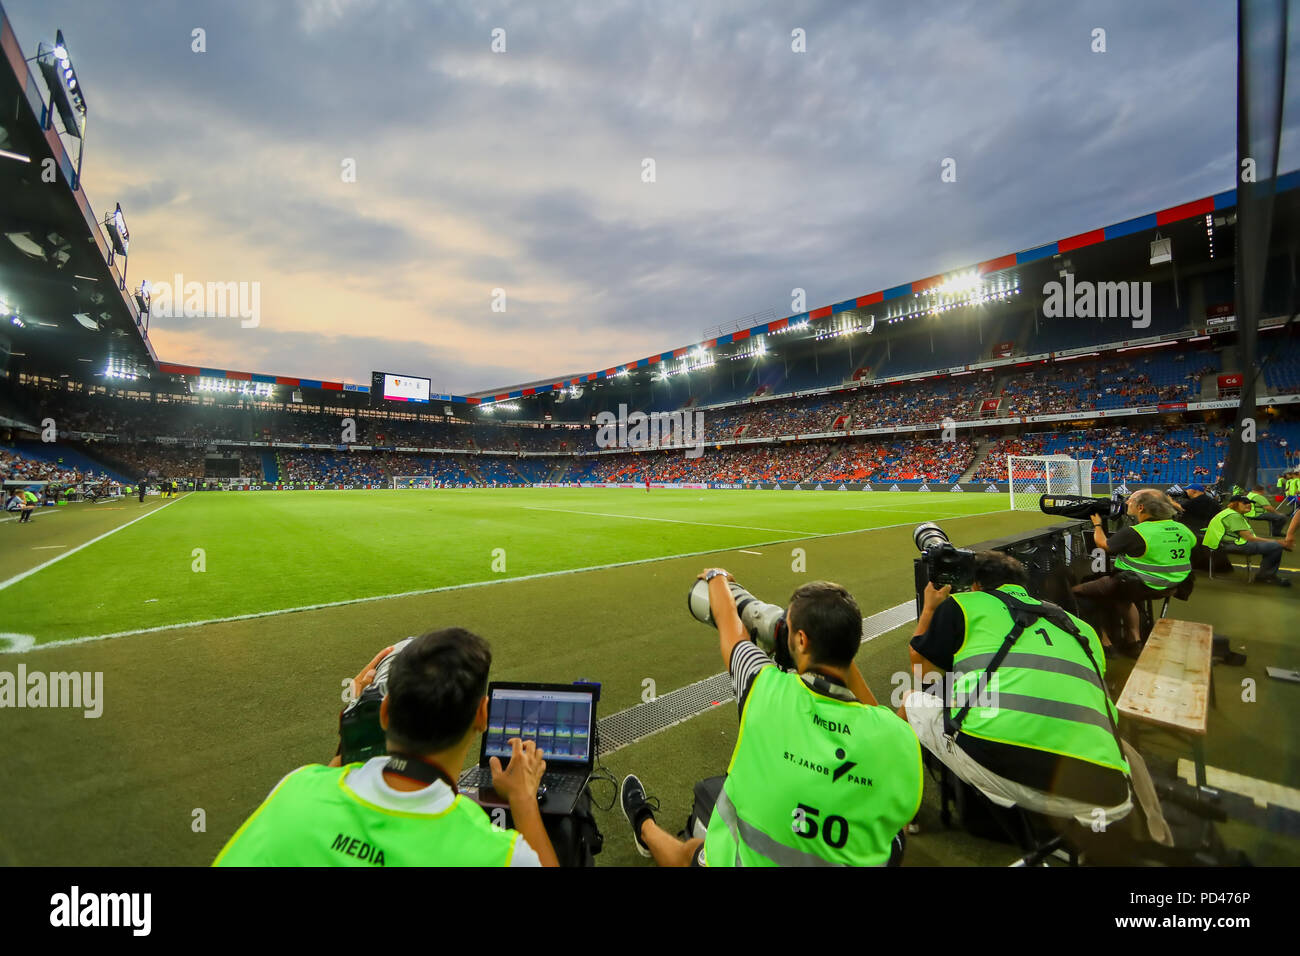 Basel, Switzerland - August 1, 2018: Interior view of the full at St. Jakob-Park Stadium during the UEFA Champions League match between PAOK vs Basel - Stock Image